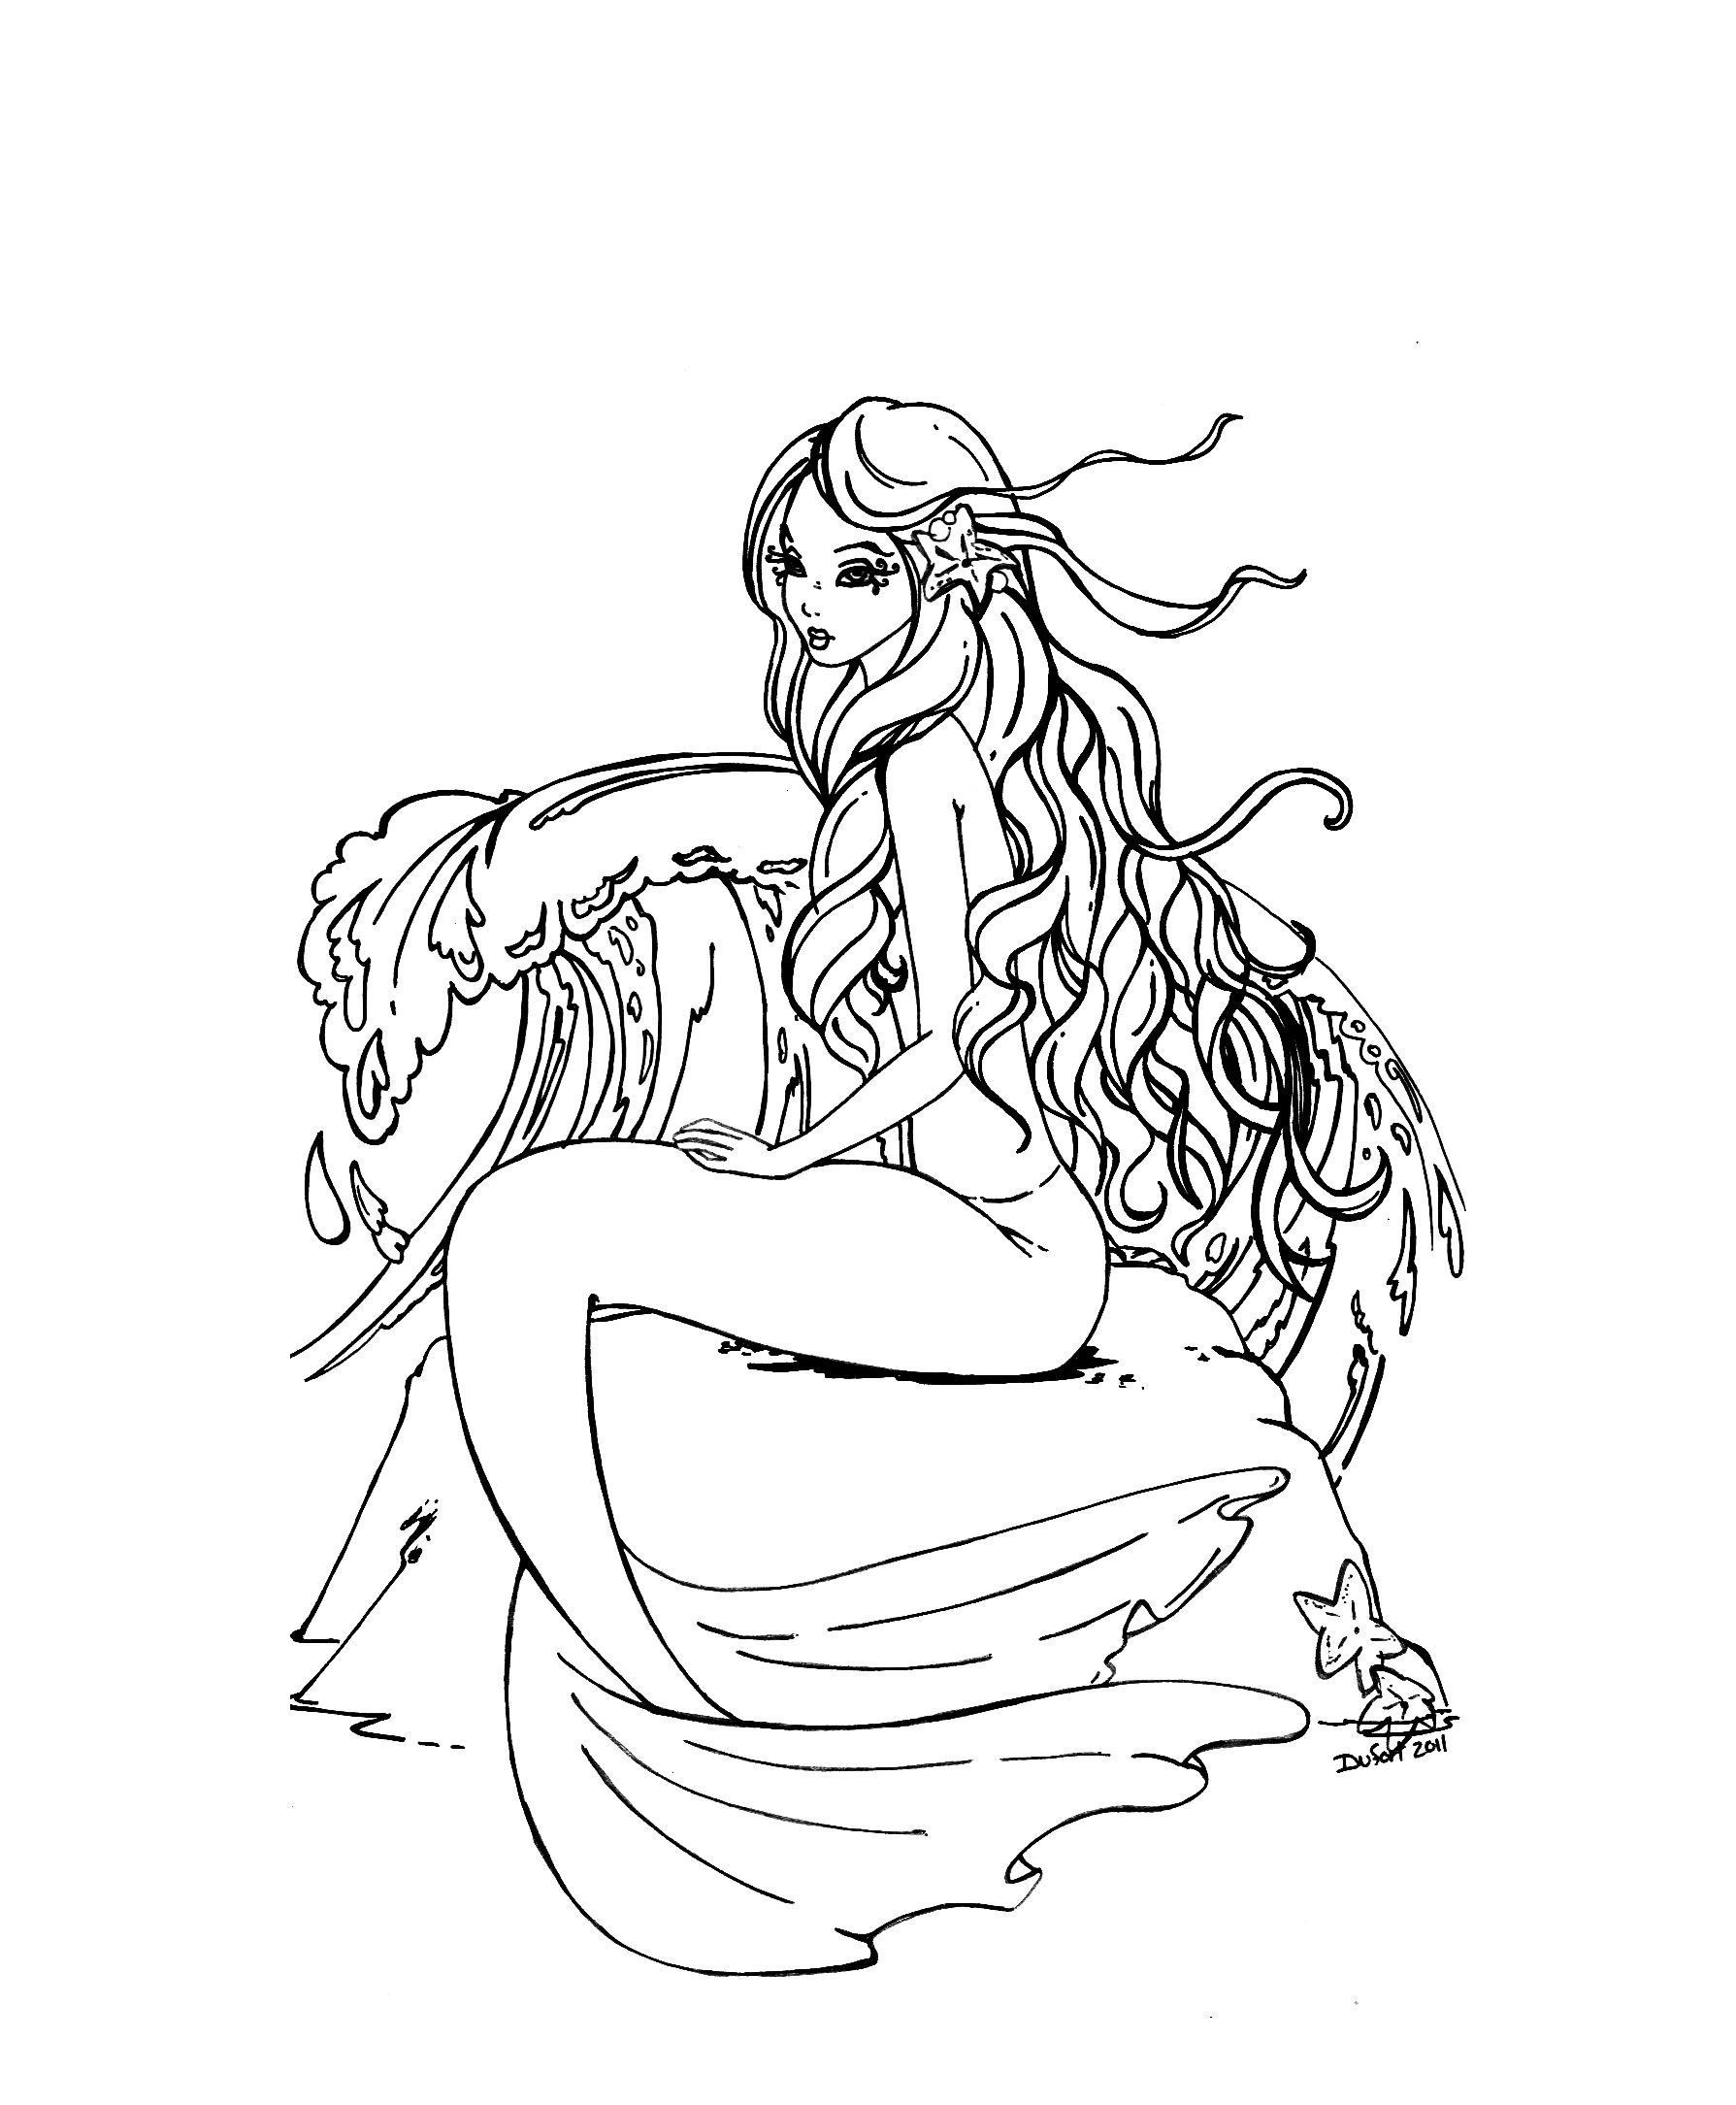 jade dragonne coloring pages - Pesquisa Google | Many Mermaids ...